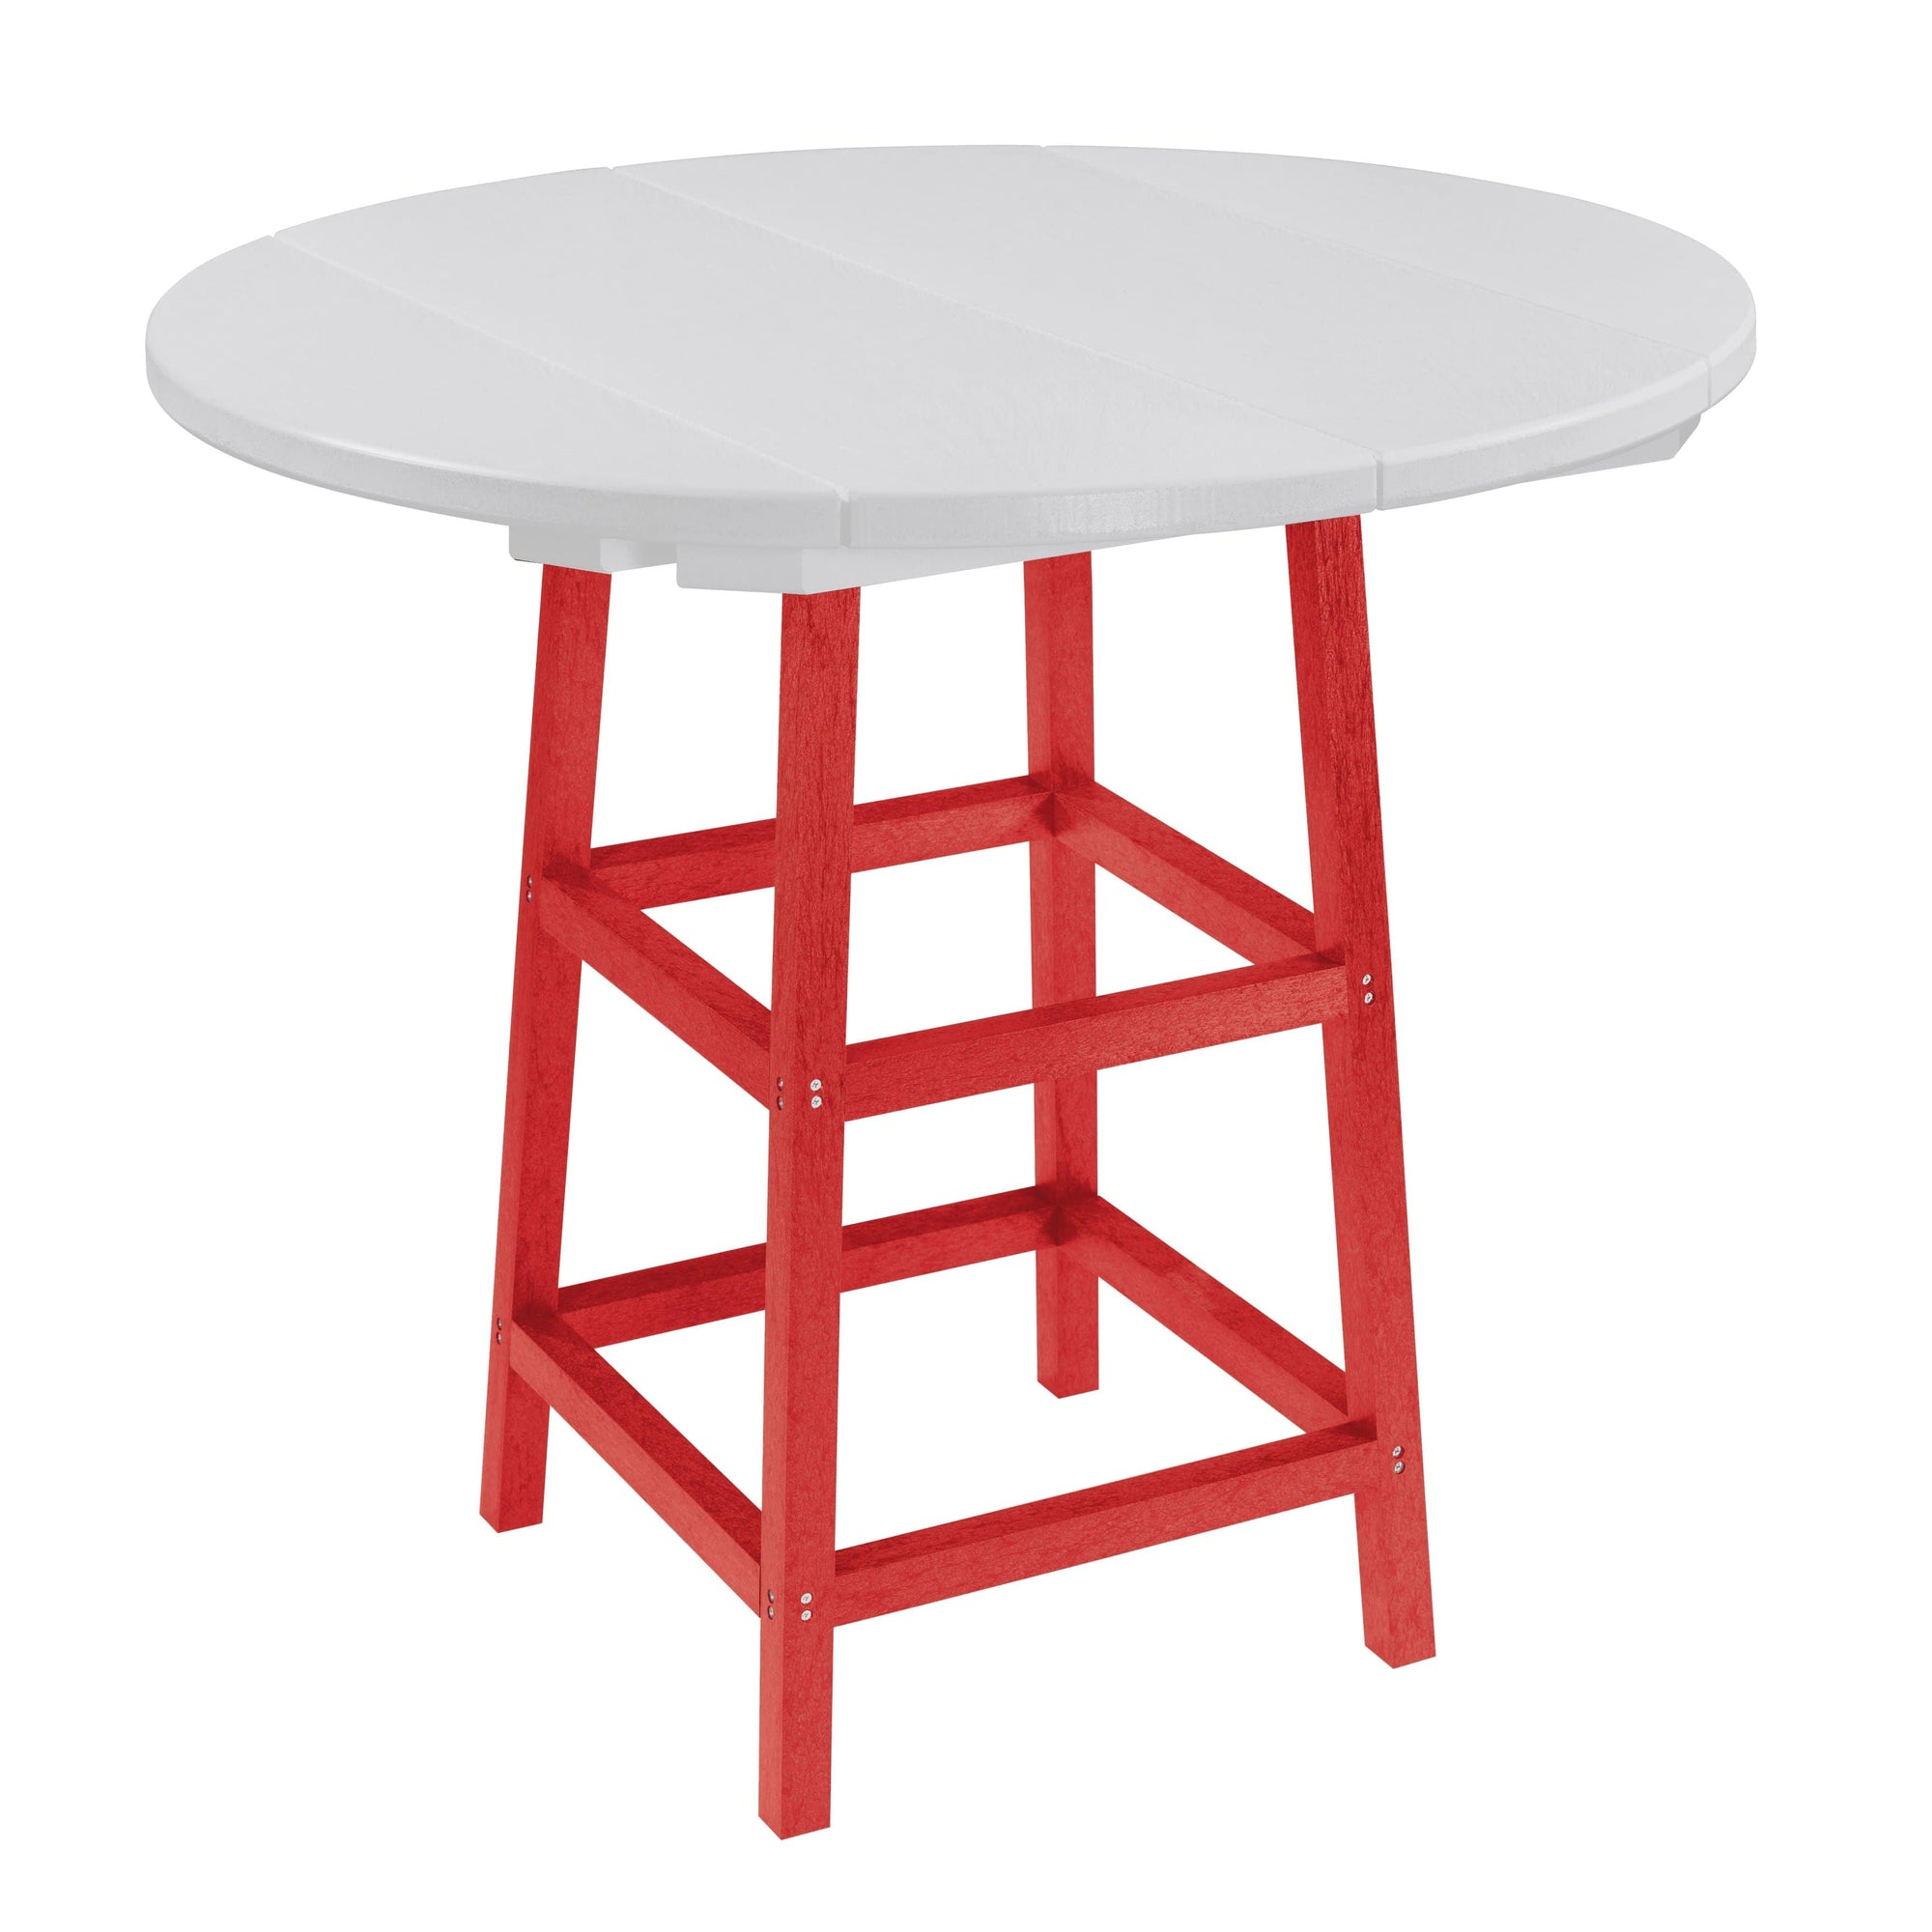 "C.R. Plastic Products Dining Table Red-01 TB03 40"" Pub Table Legs"